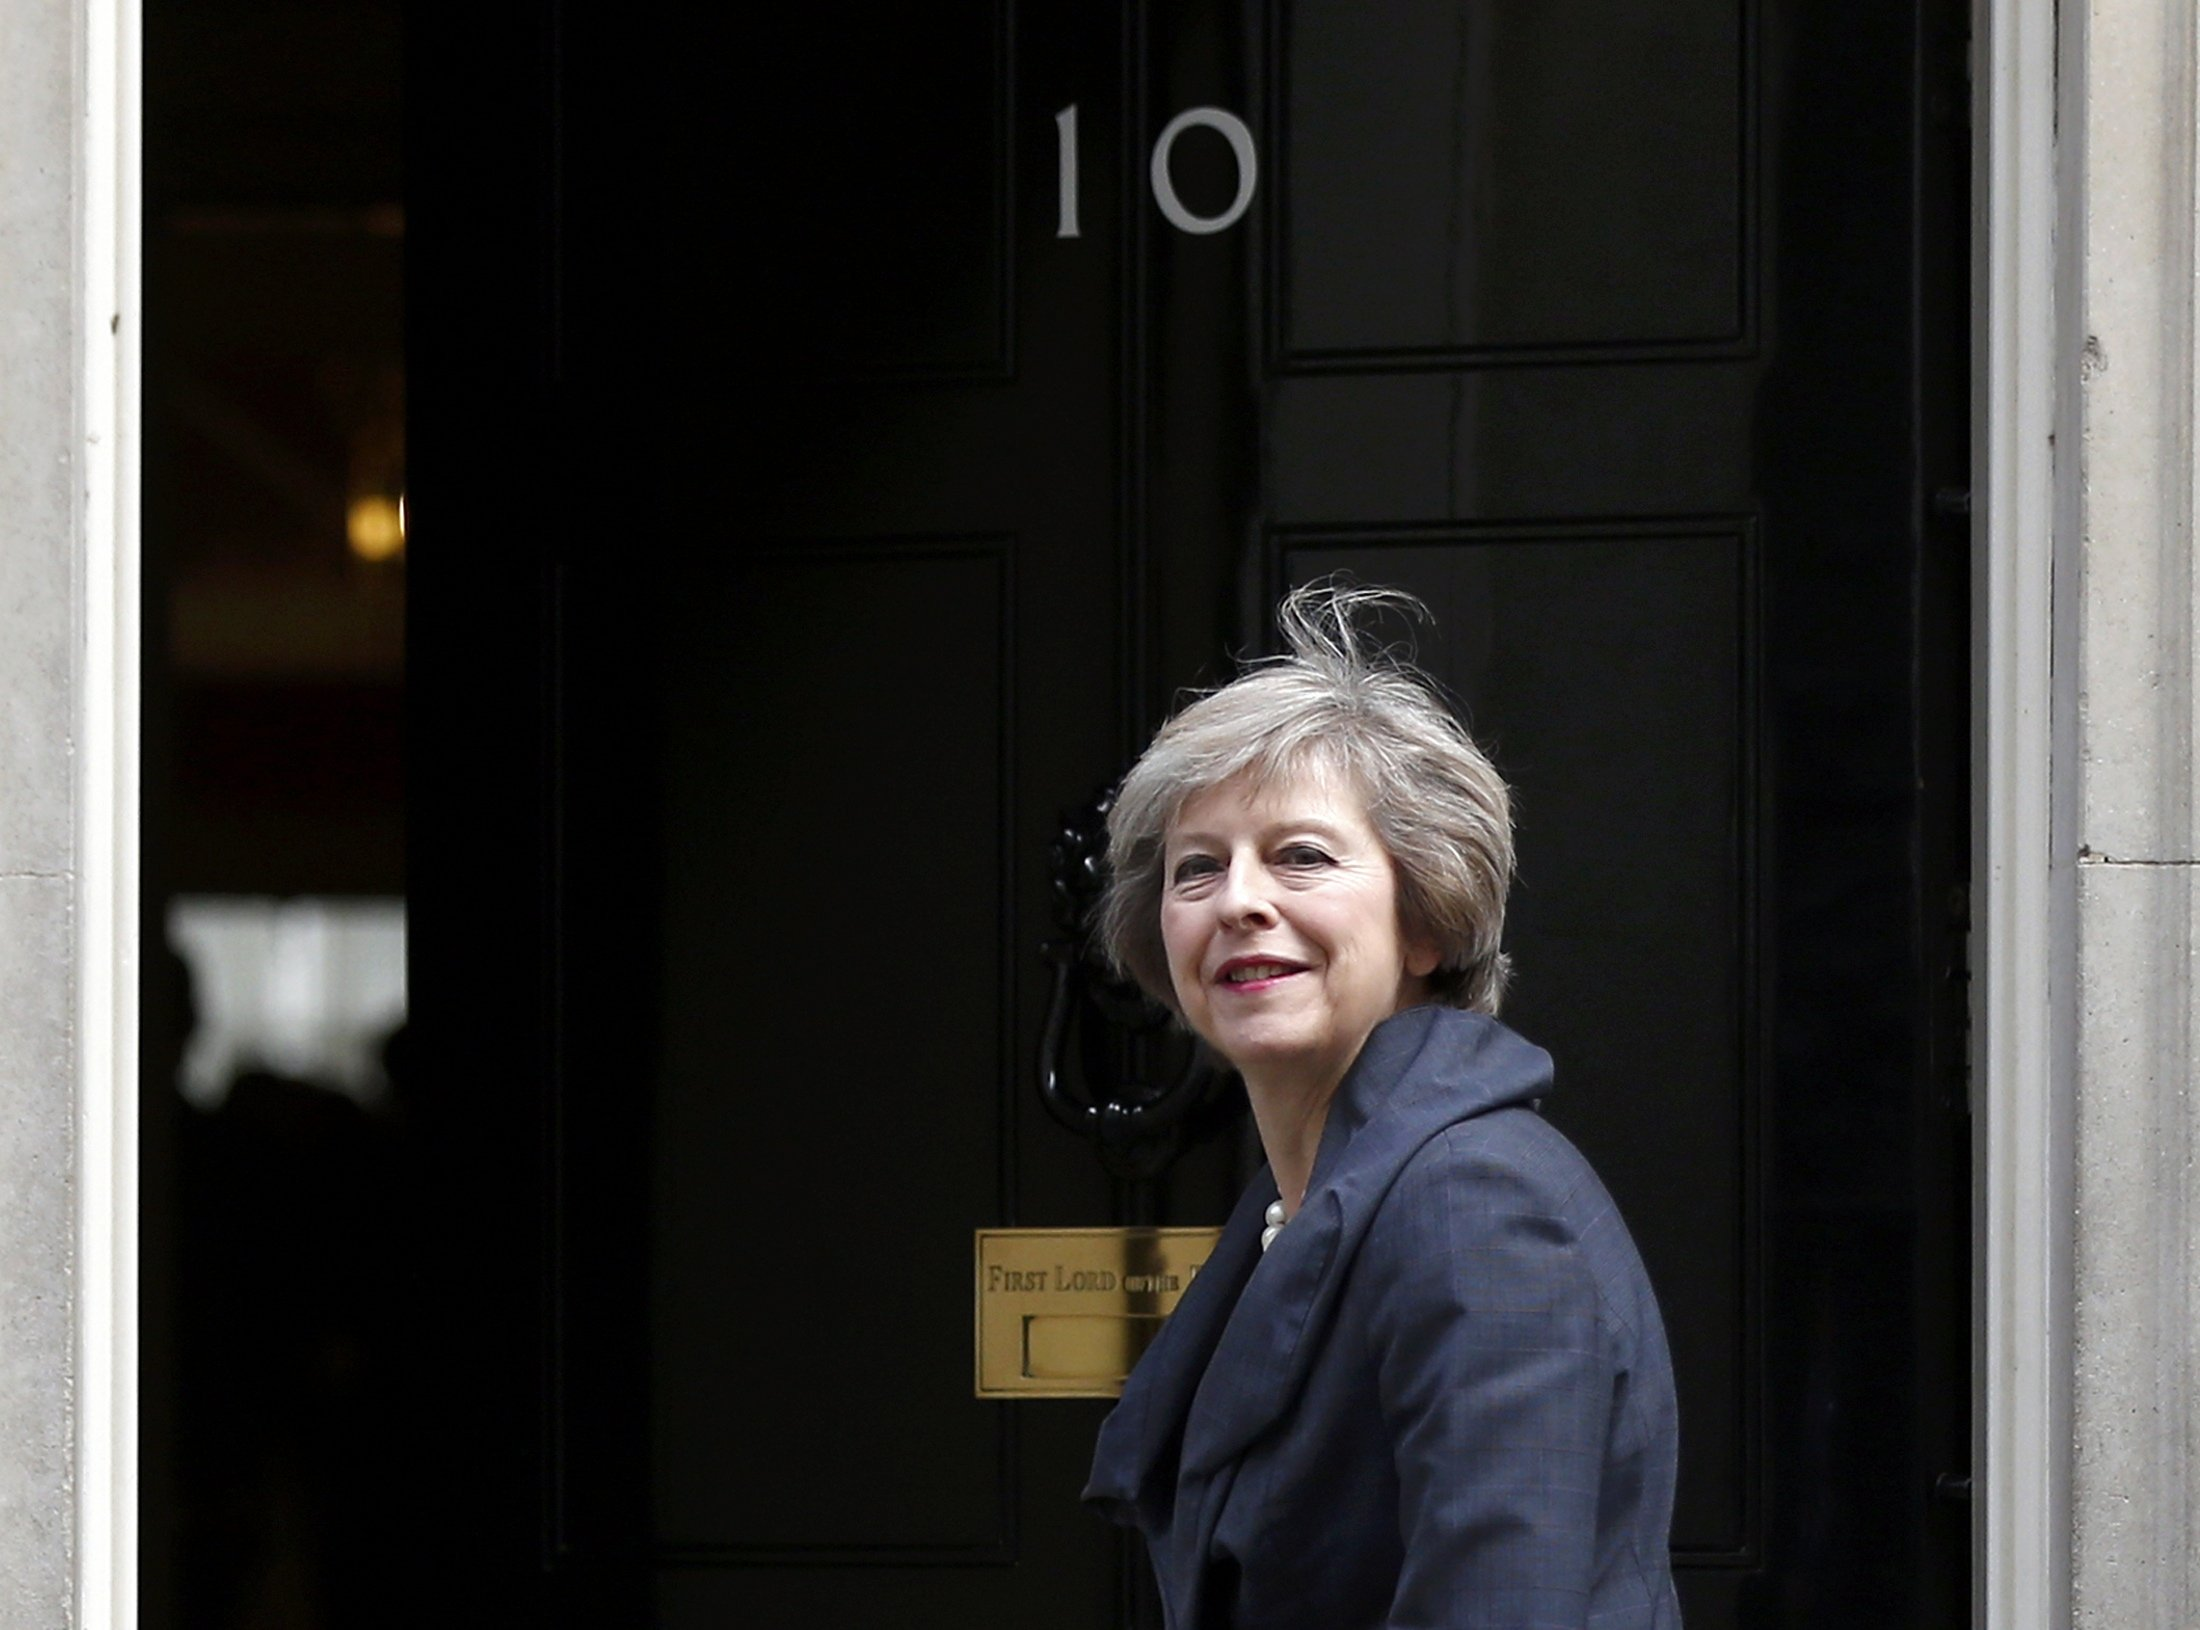 Britain's Home Secretary Theresa May, who is due to take over as prime minister on Wednesday, arrives for a cabinet meeting at number 10 Downing Street, in central London, Britain July 12, 2016. REUTERS/Neil Hall